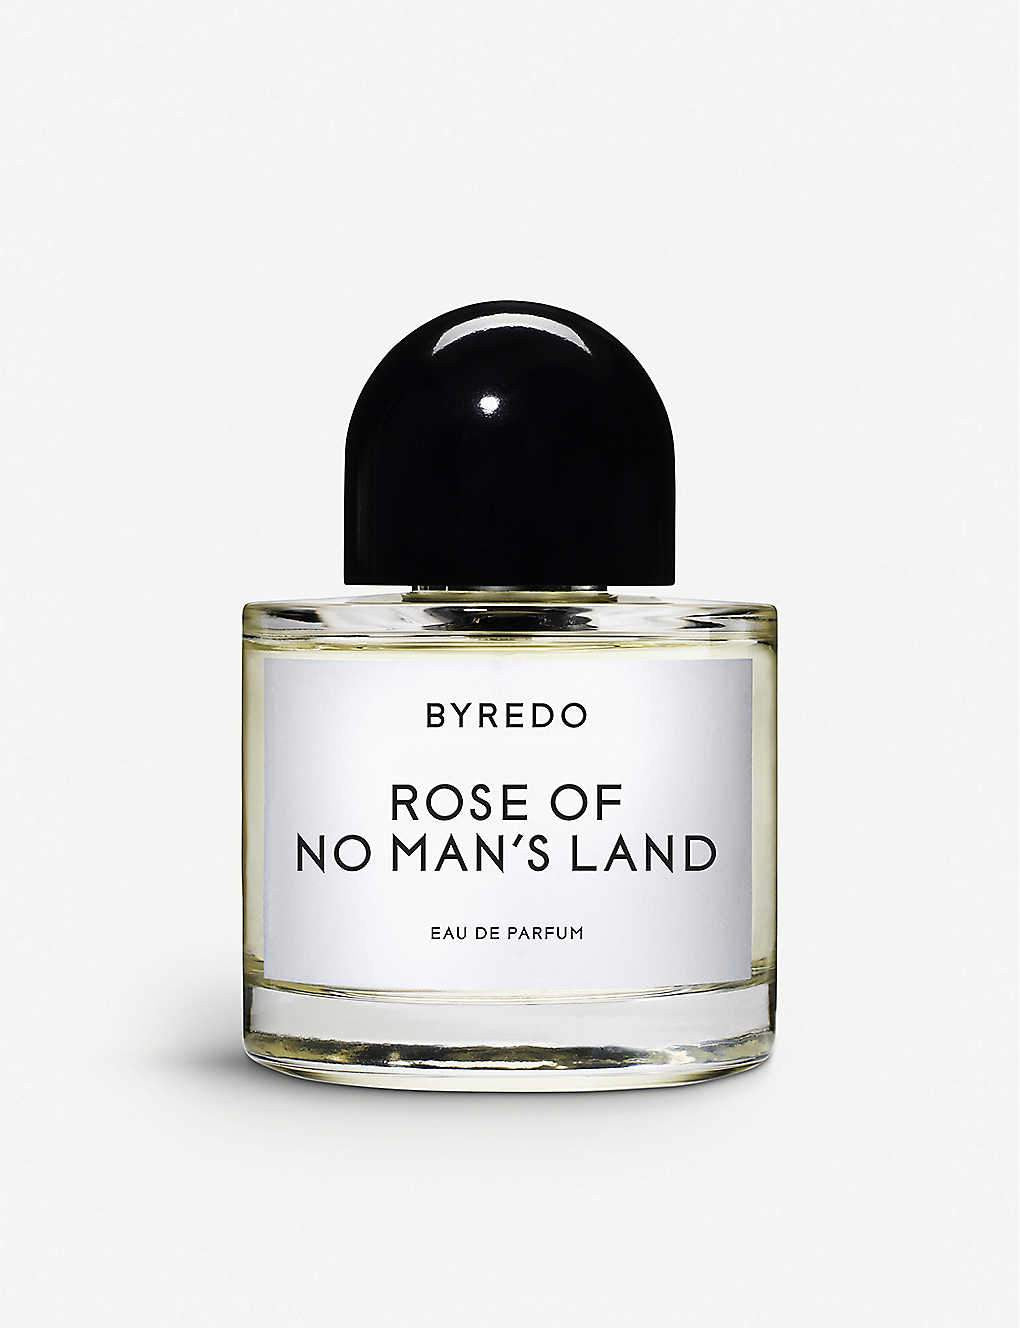 Rose of No Man's Land  de Parfum by Byredo